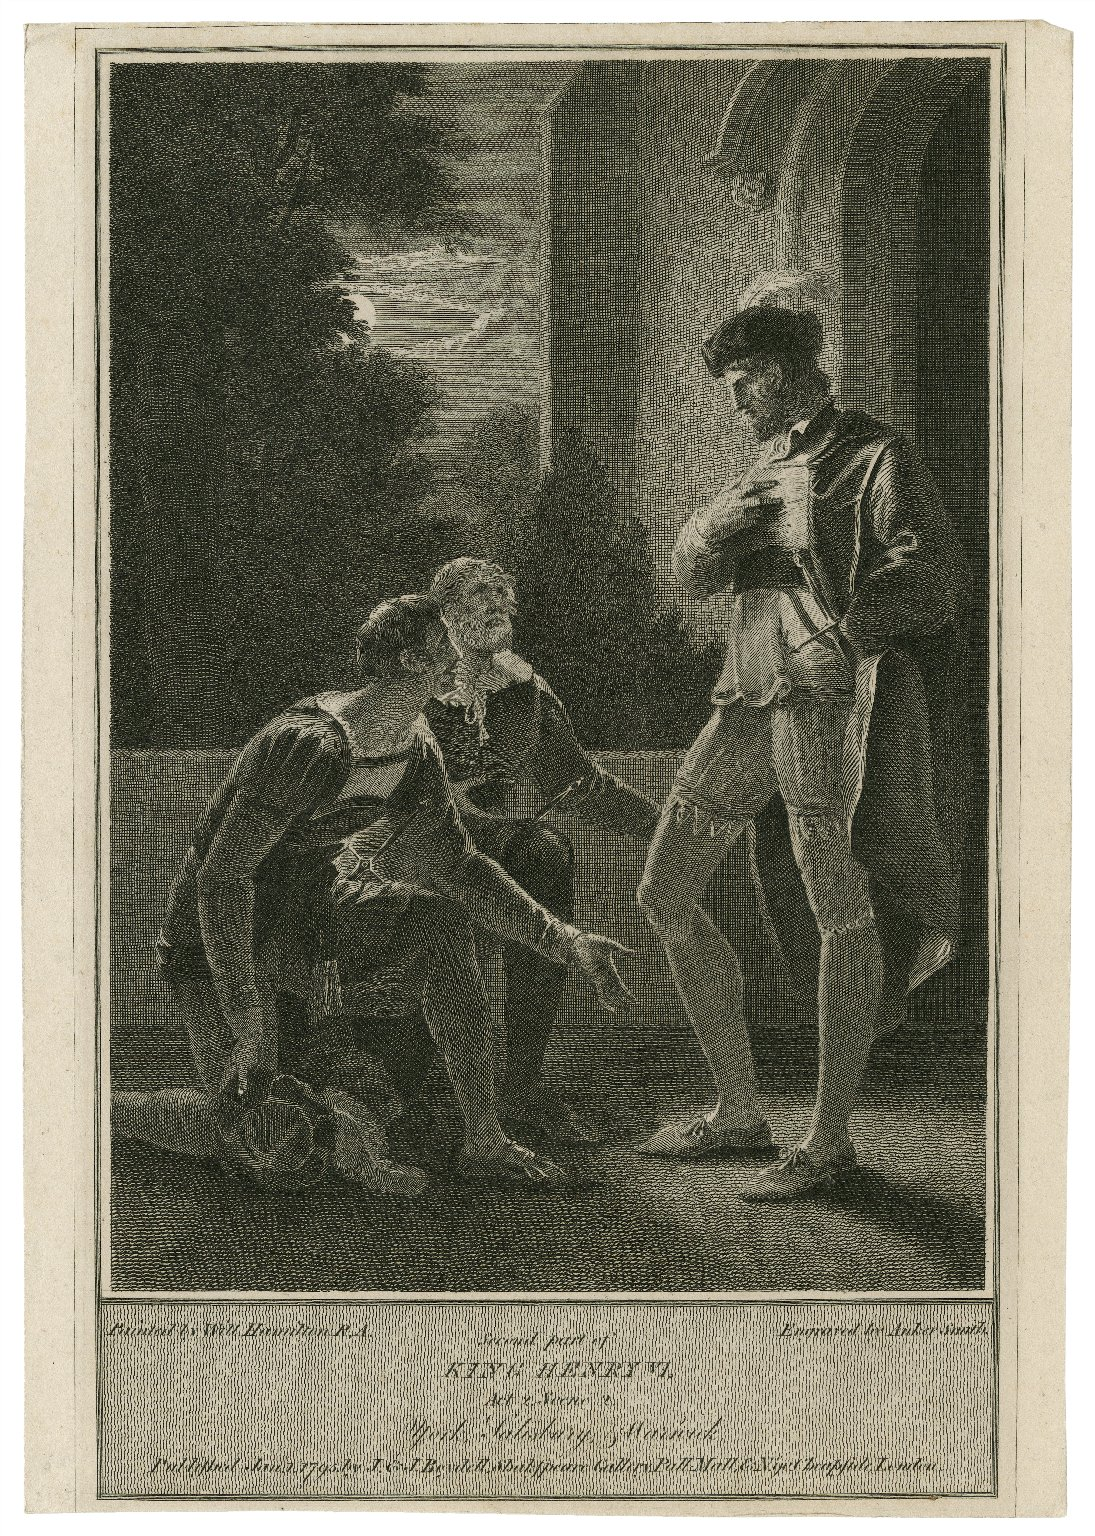 Second part of King Henry VI, act 2, scene 2 [graphic] / painted by Will. Hamilton R.A. ; engraved by Anker Smith.